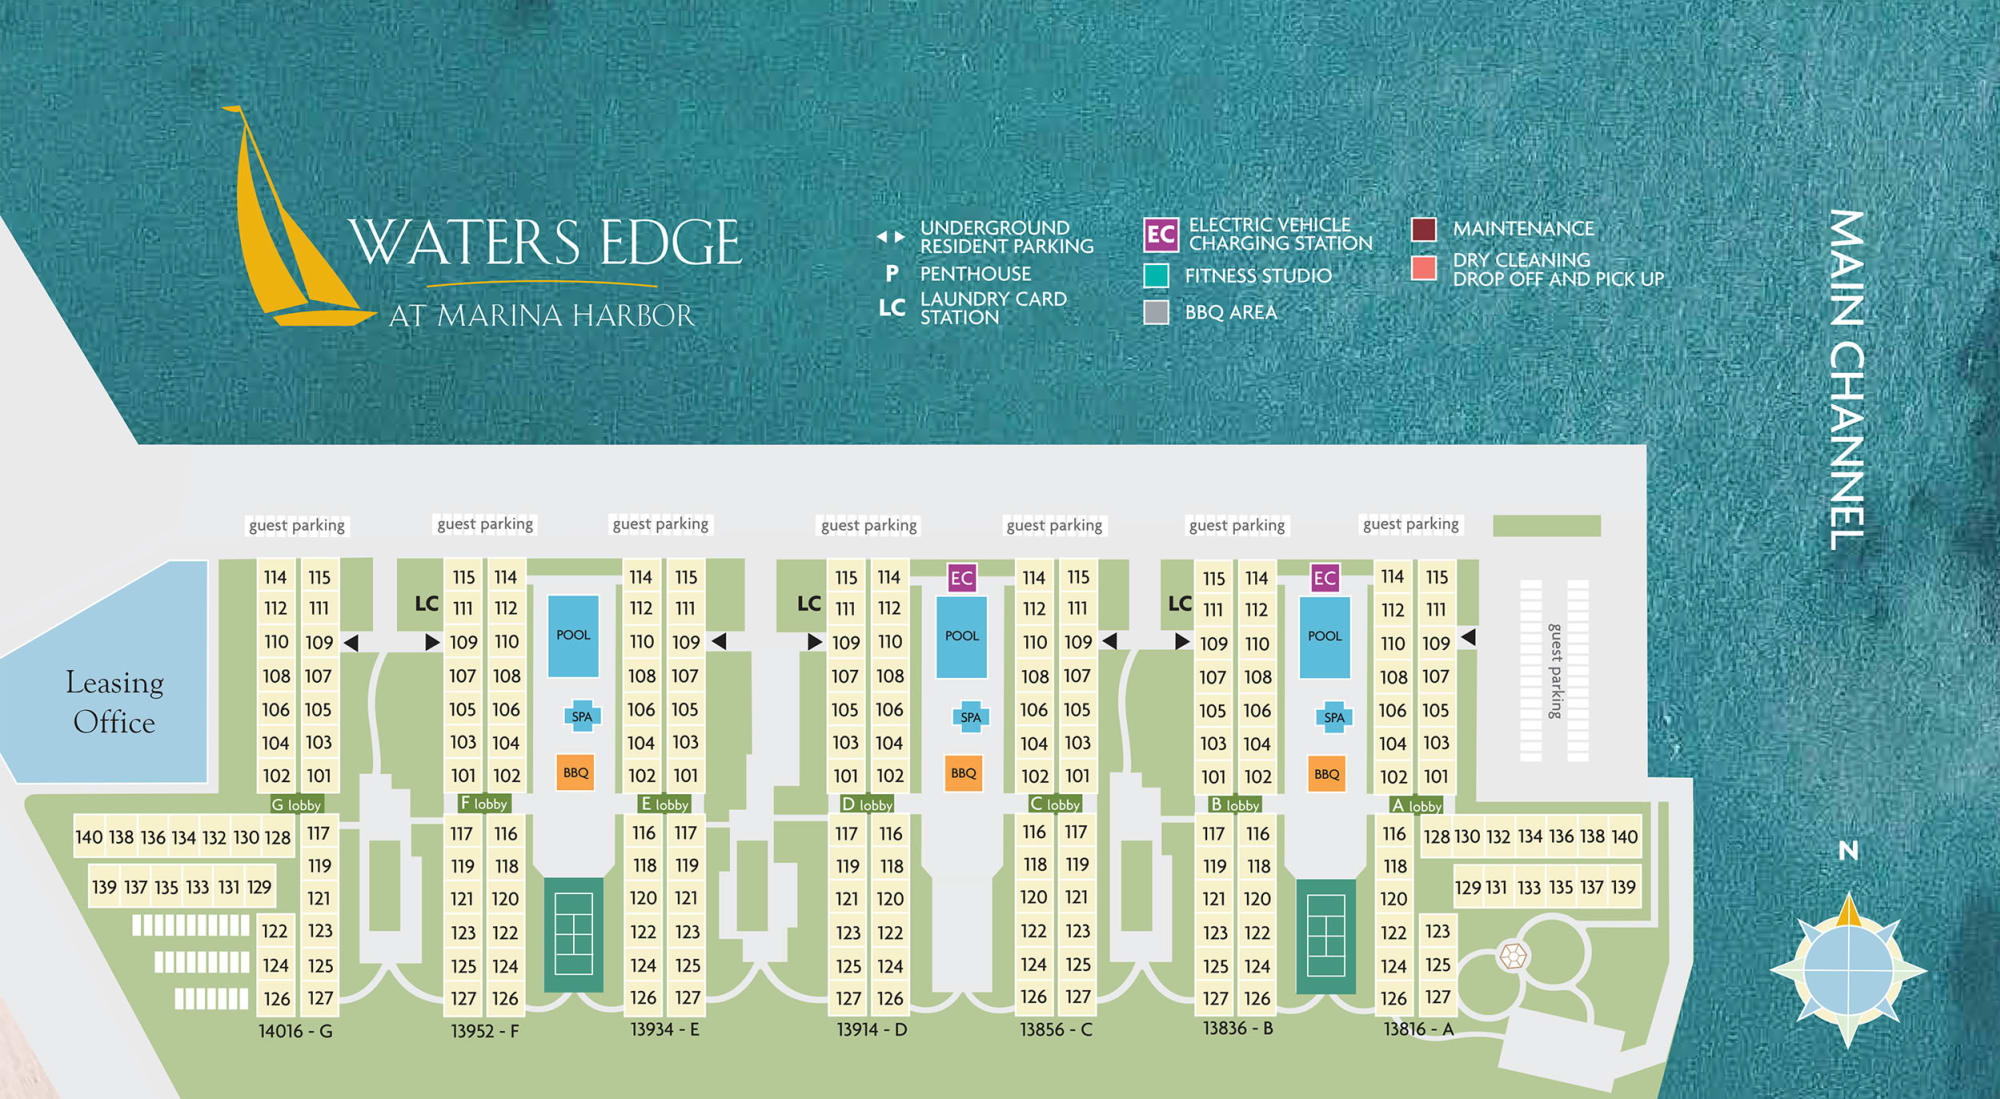 Site plan for Waters Edge at Marina Harbor in Marina Del Rey, California